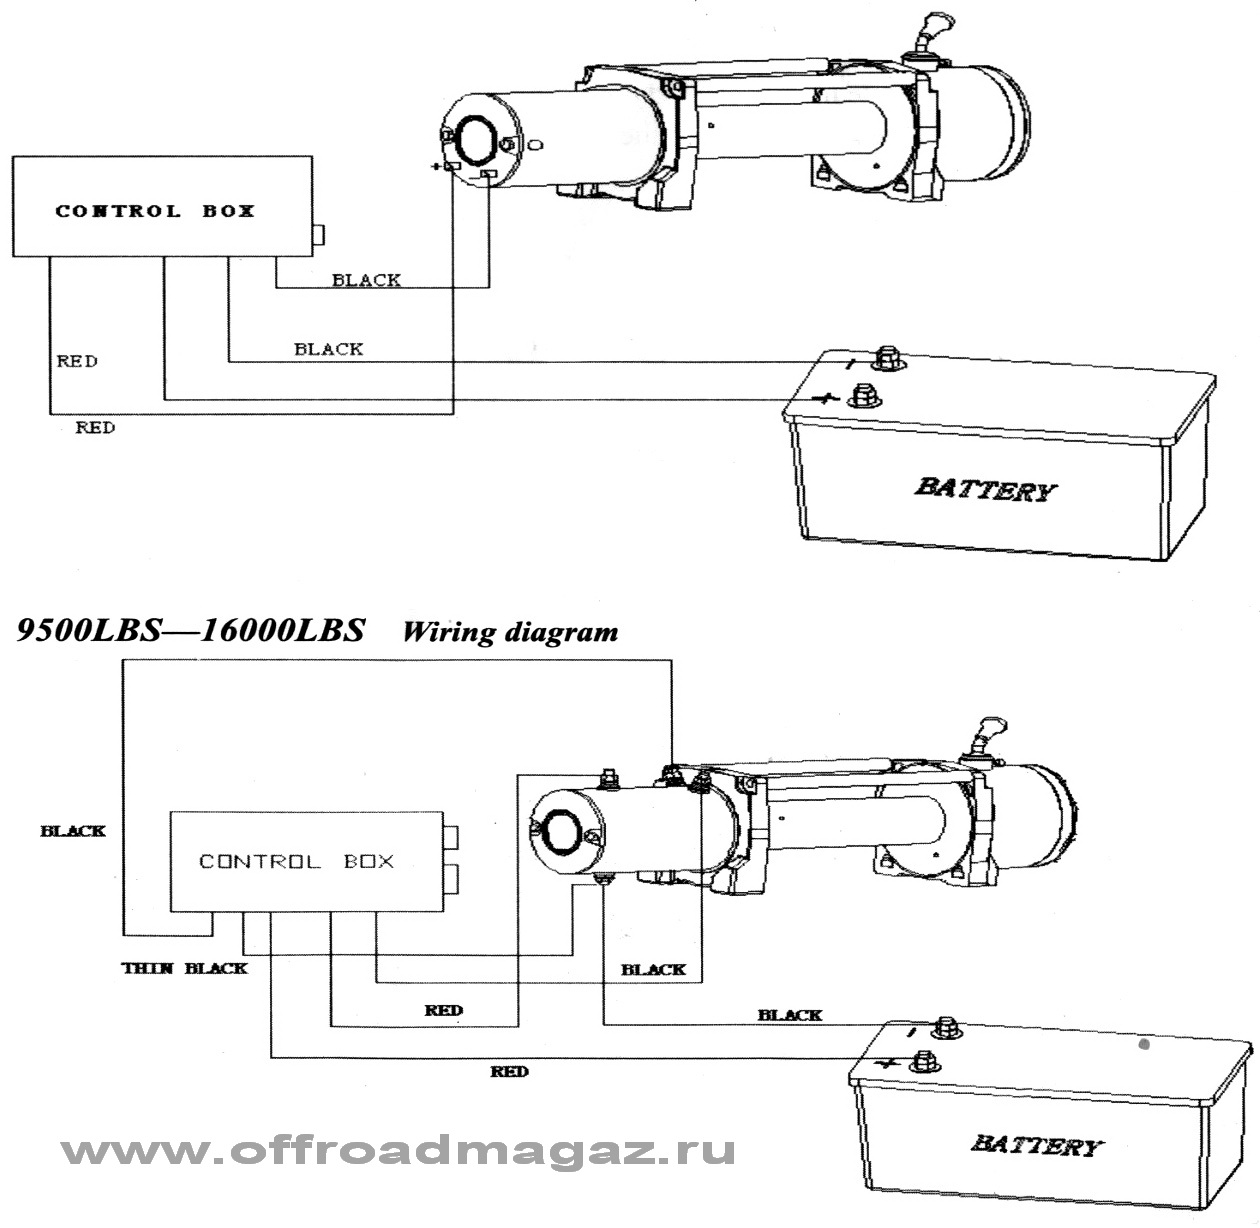 12v winch motor wiring diagram triple beam balance electric 24v 8000lbs 16000lbs manual